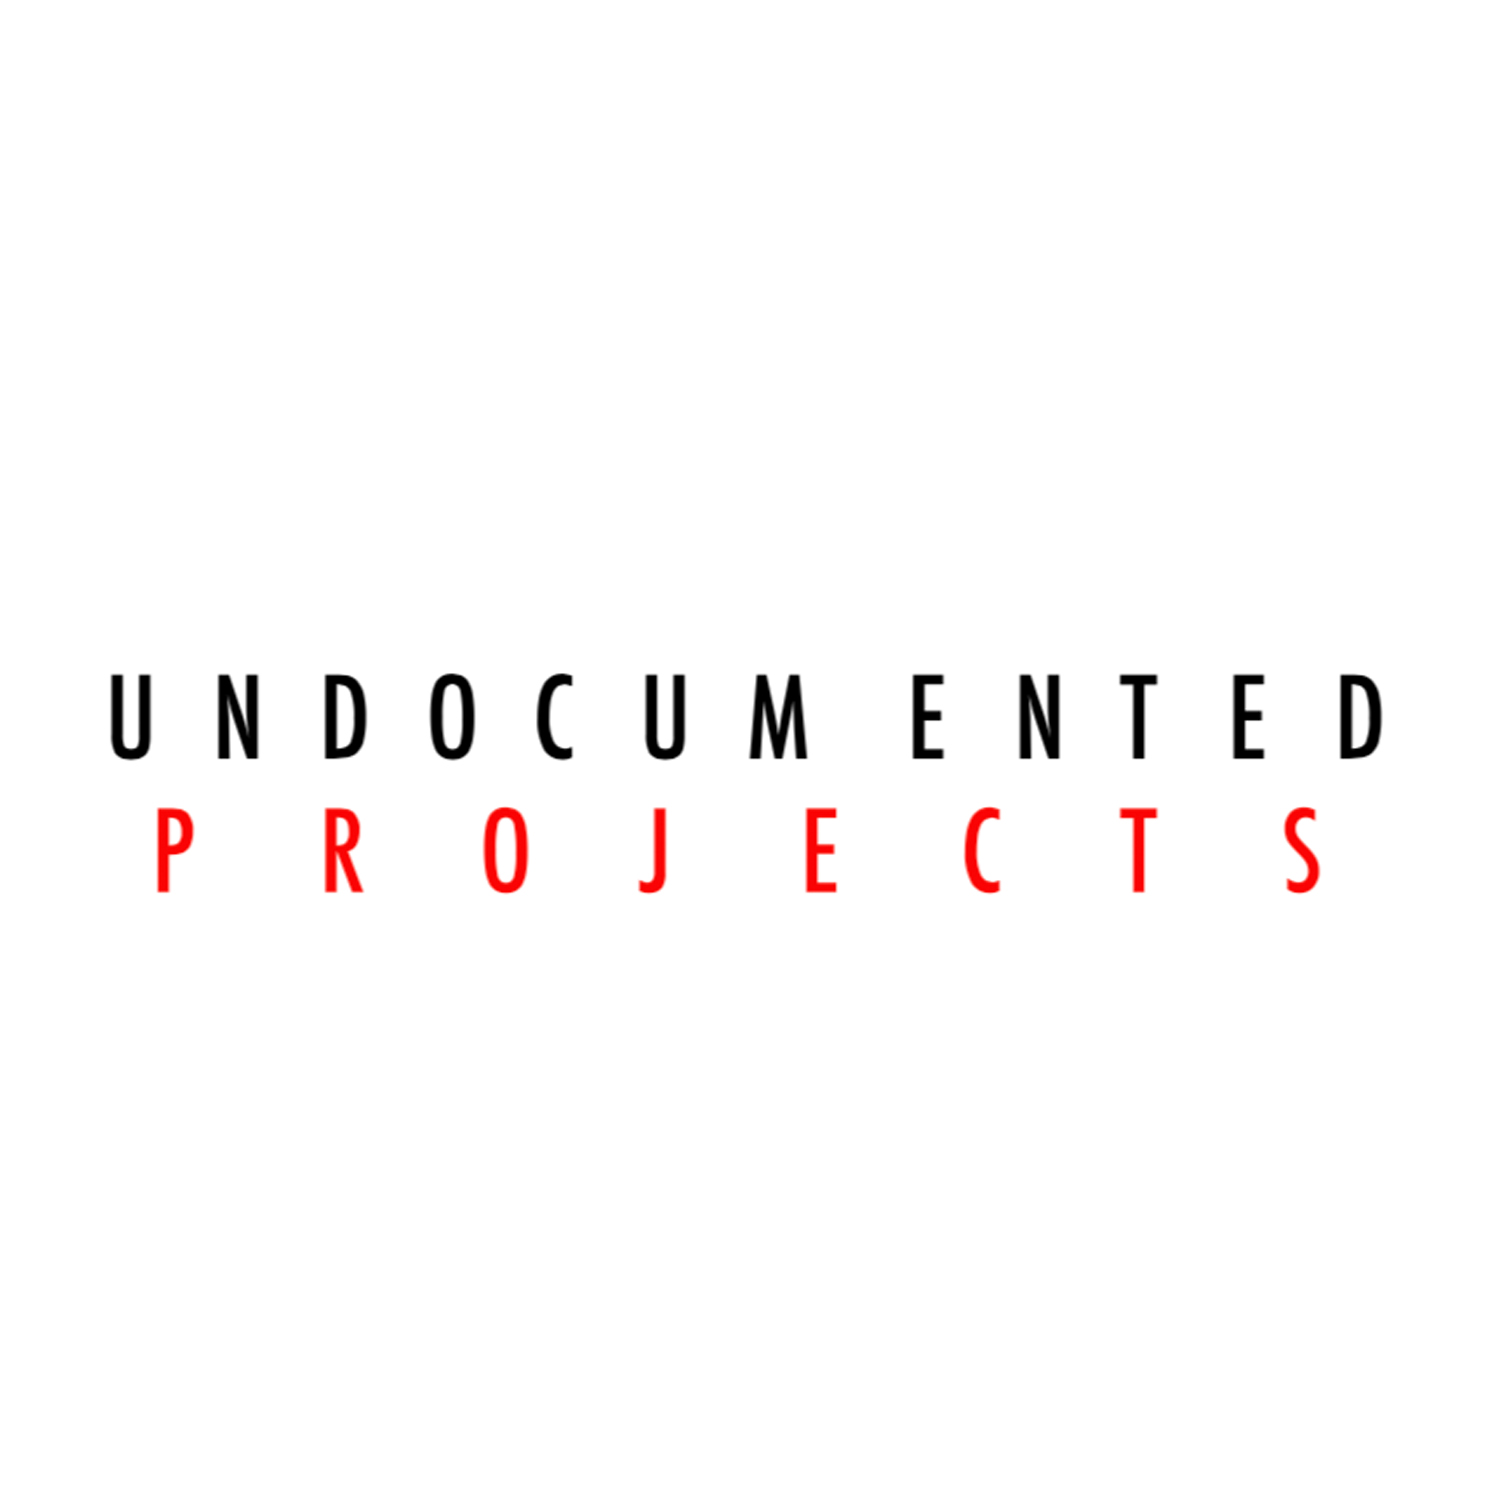 UNDOCUMENTED PROJECTS